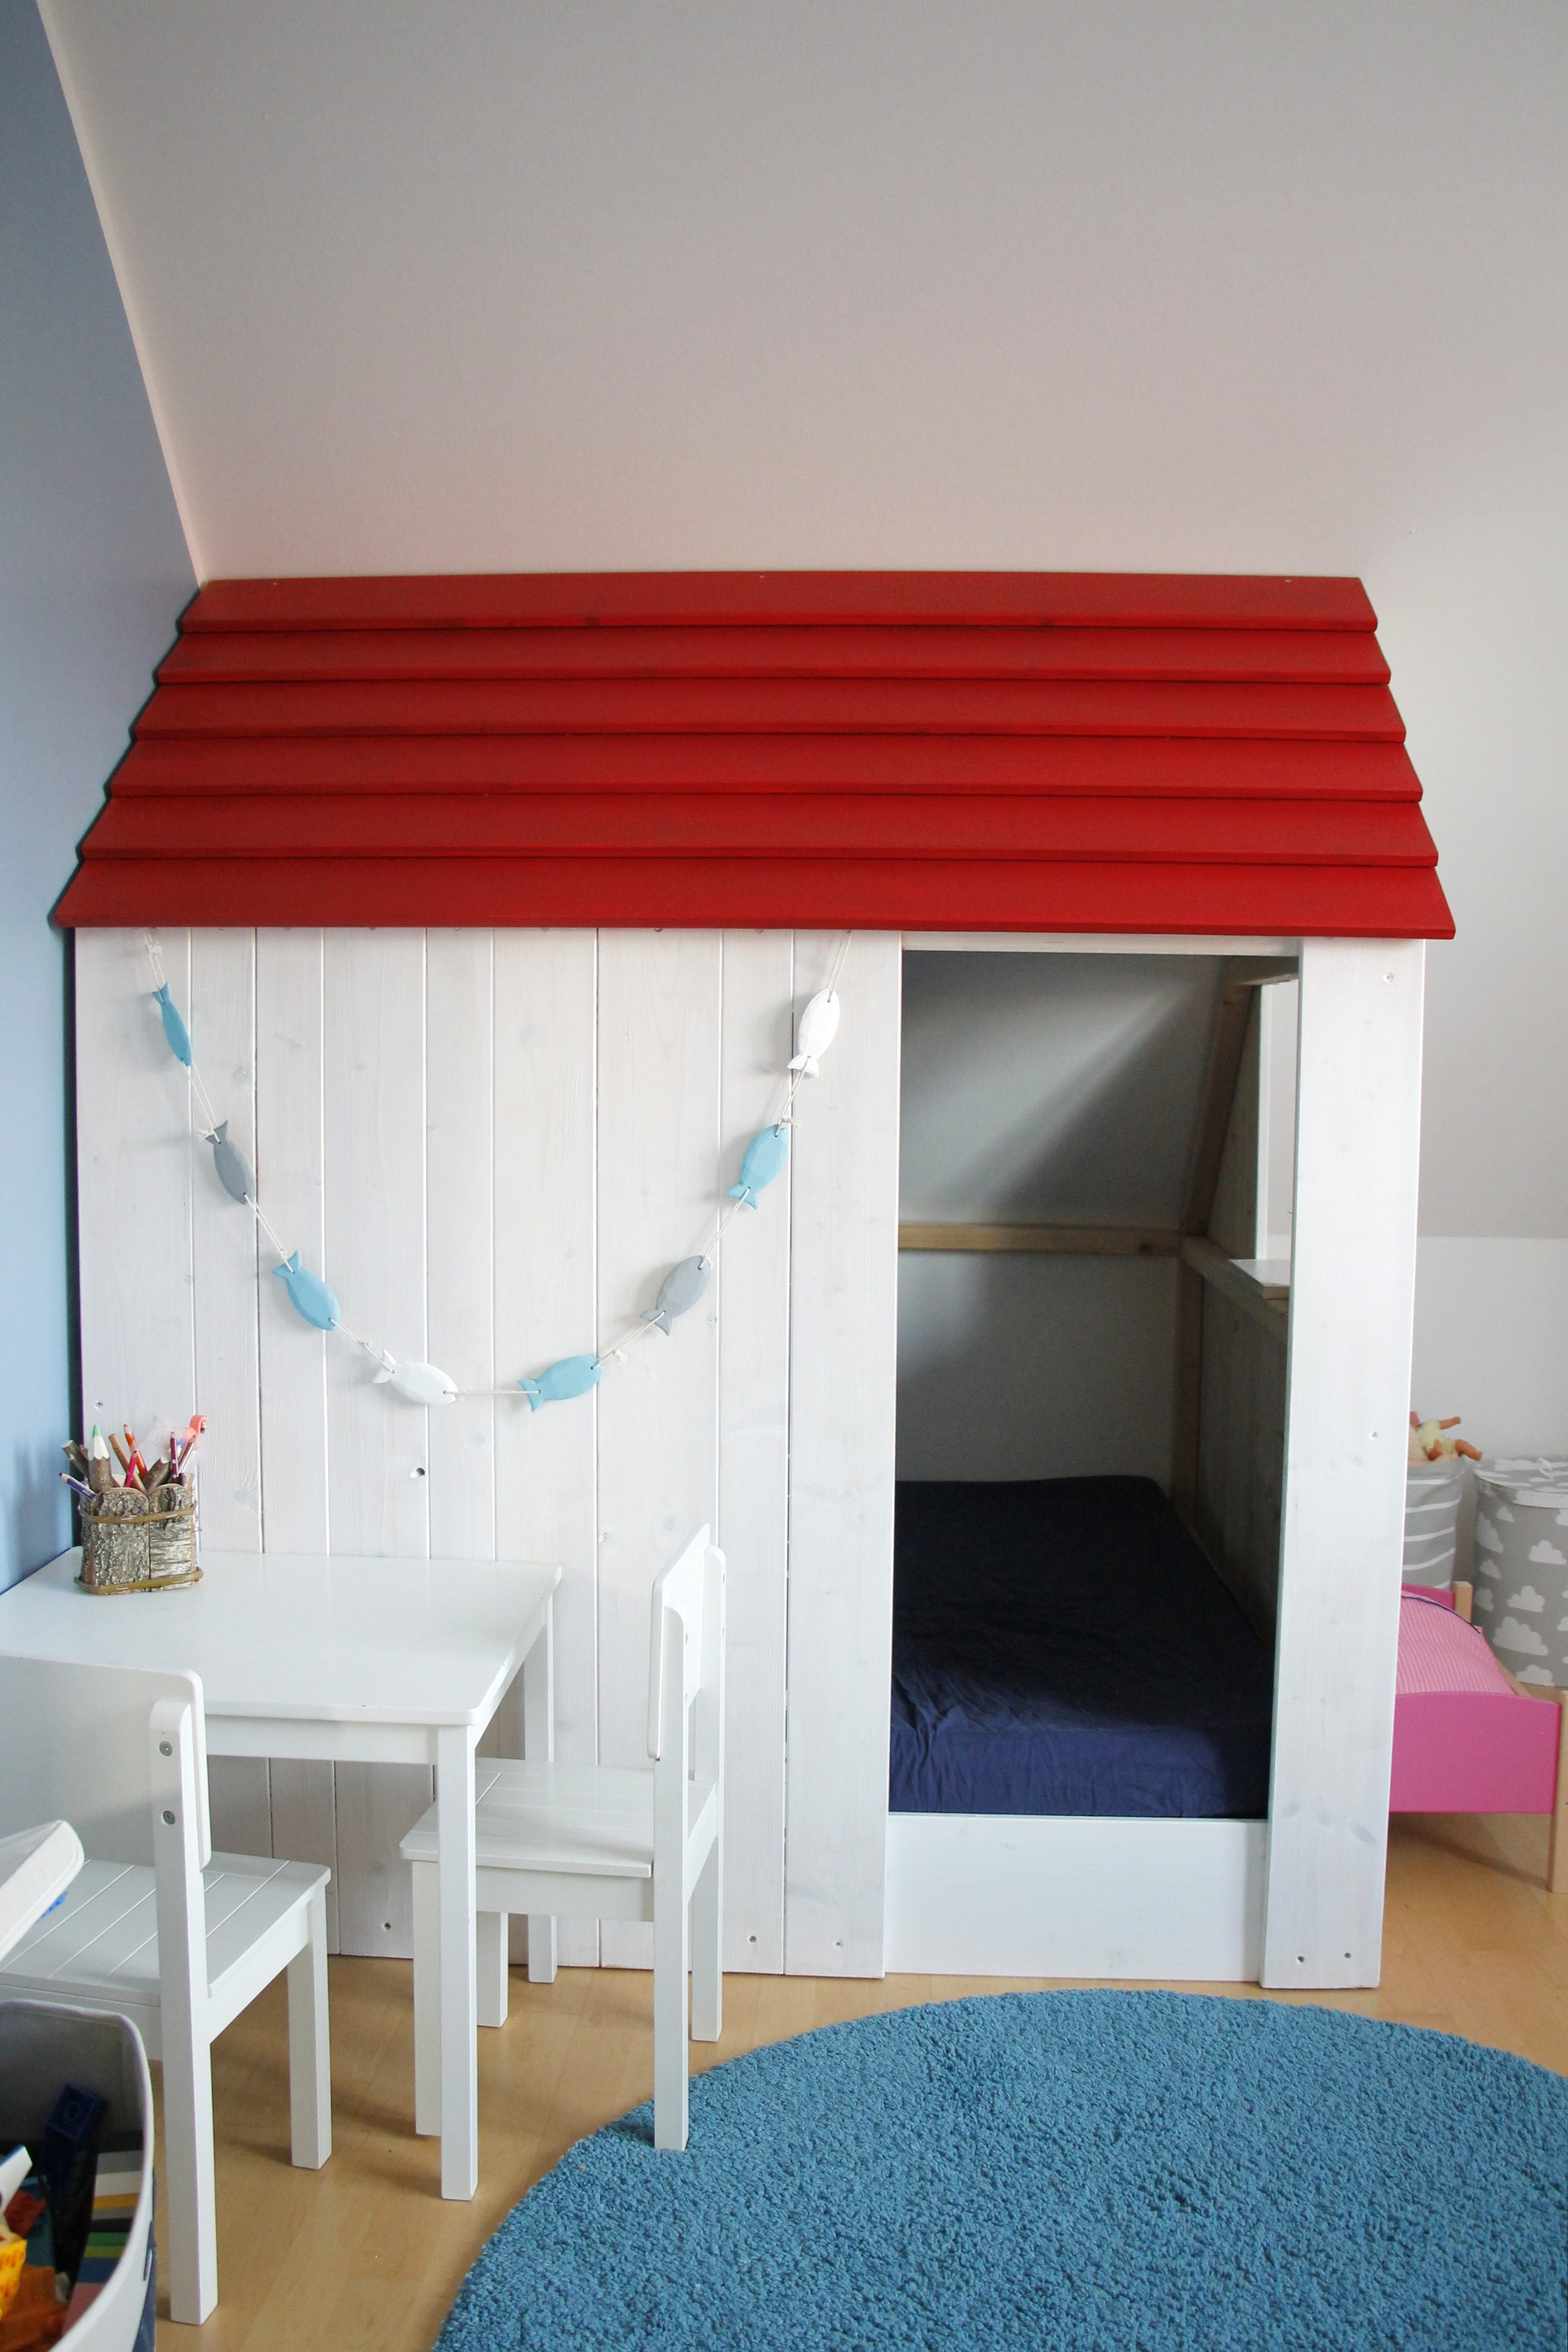 holzspielhaus kinderzimmer lavendelblog. Black Bedroom Furniture Sets. Home Design Ideas